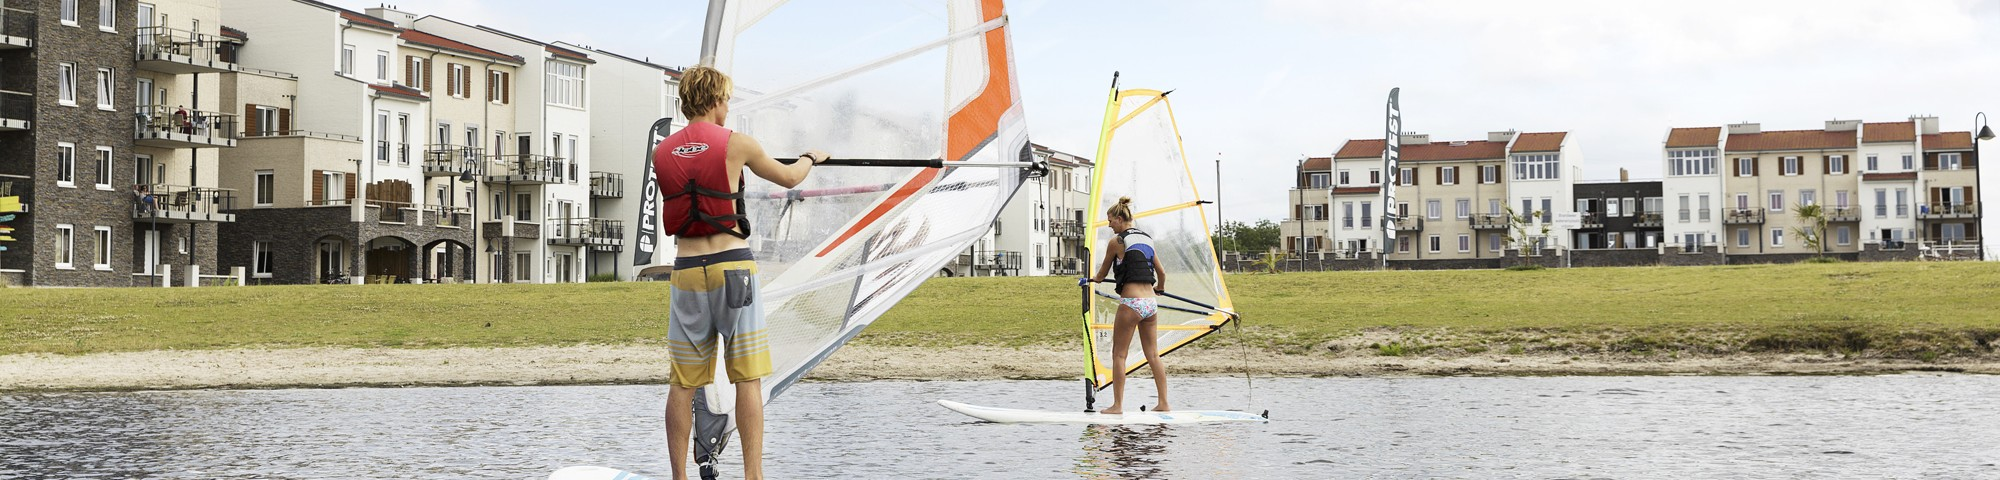 Windsurfen bij Eemhof Watersport & Beachclub